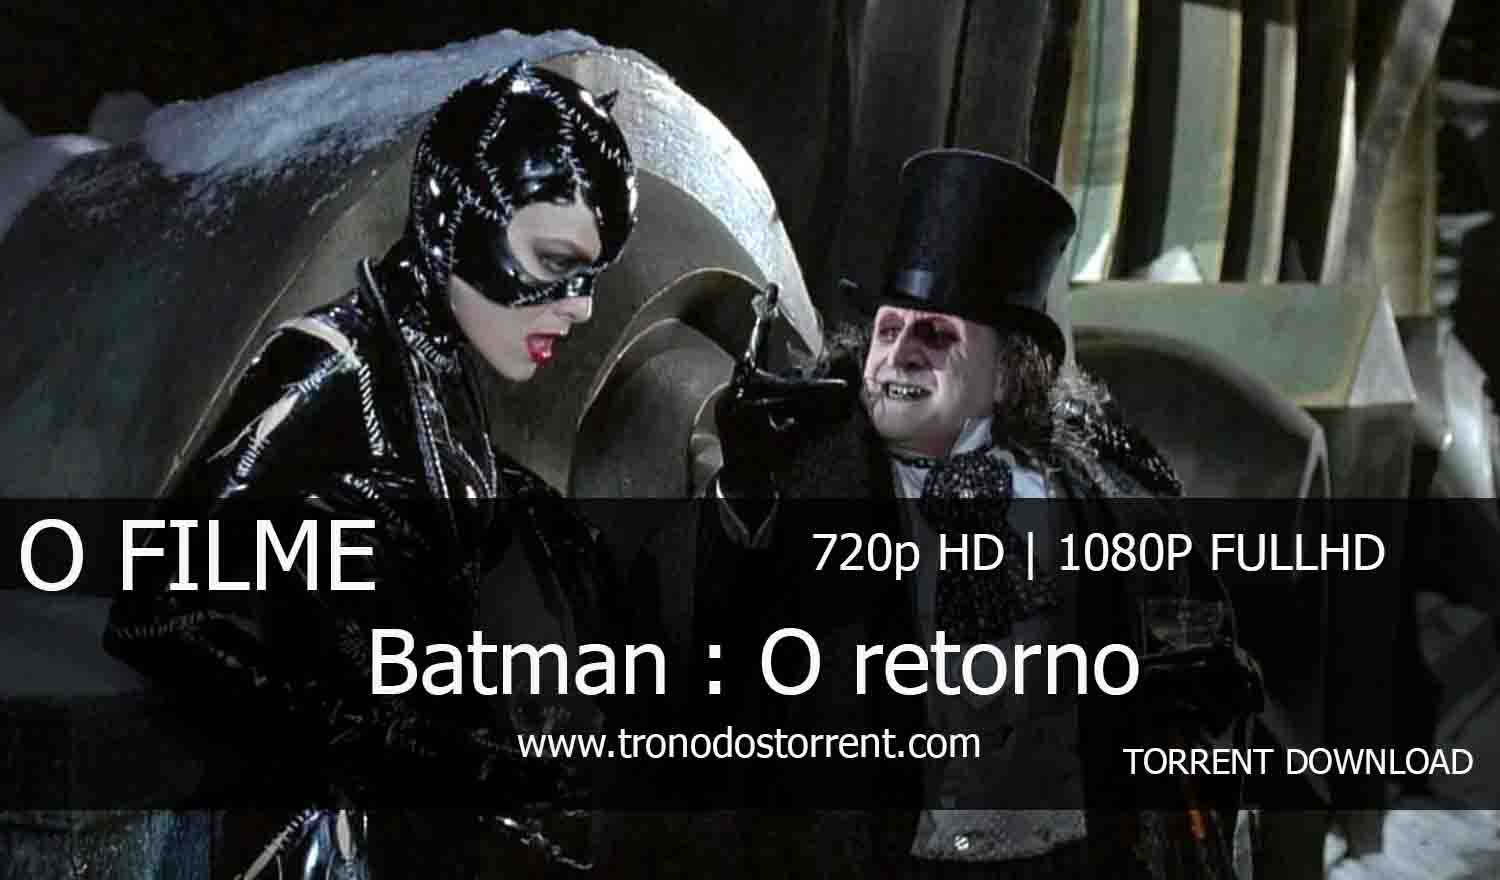 [ Torrent Filme ]  Download - Batman : O retorno– 720p | 1080p Dual Áudio 5.1